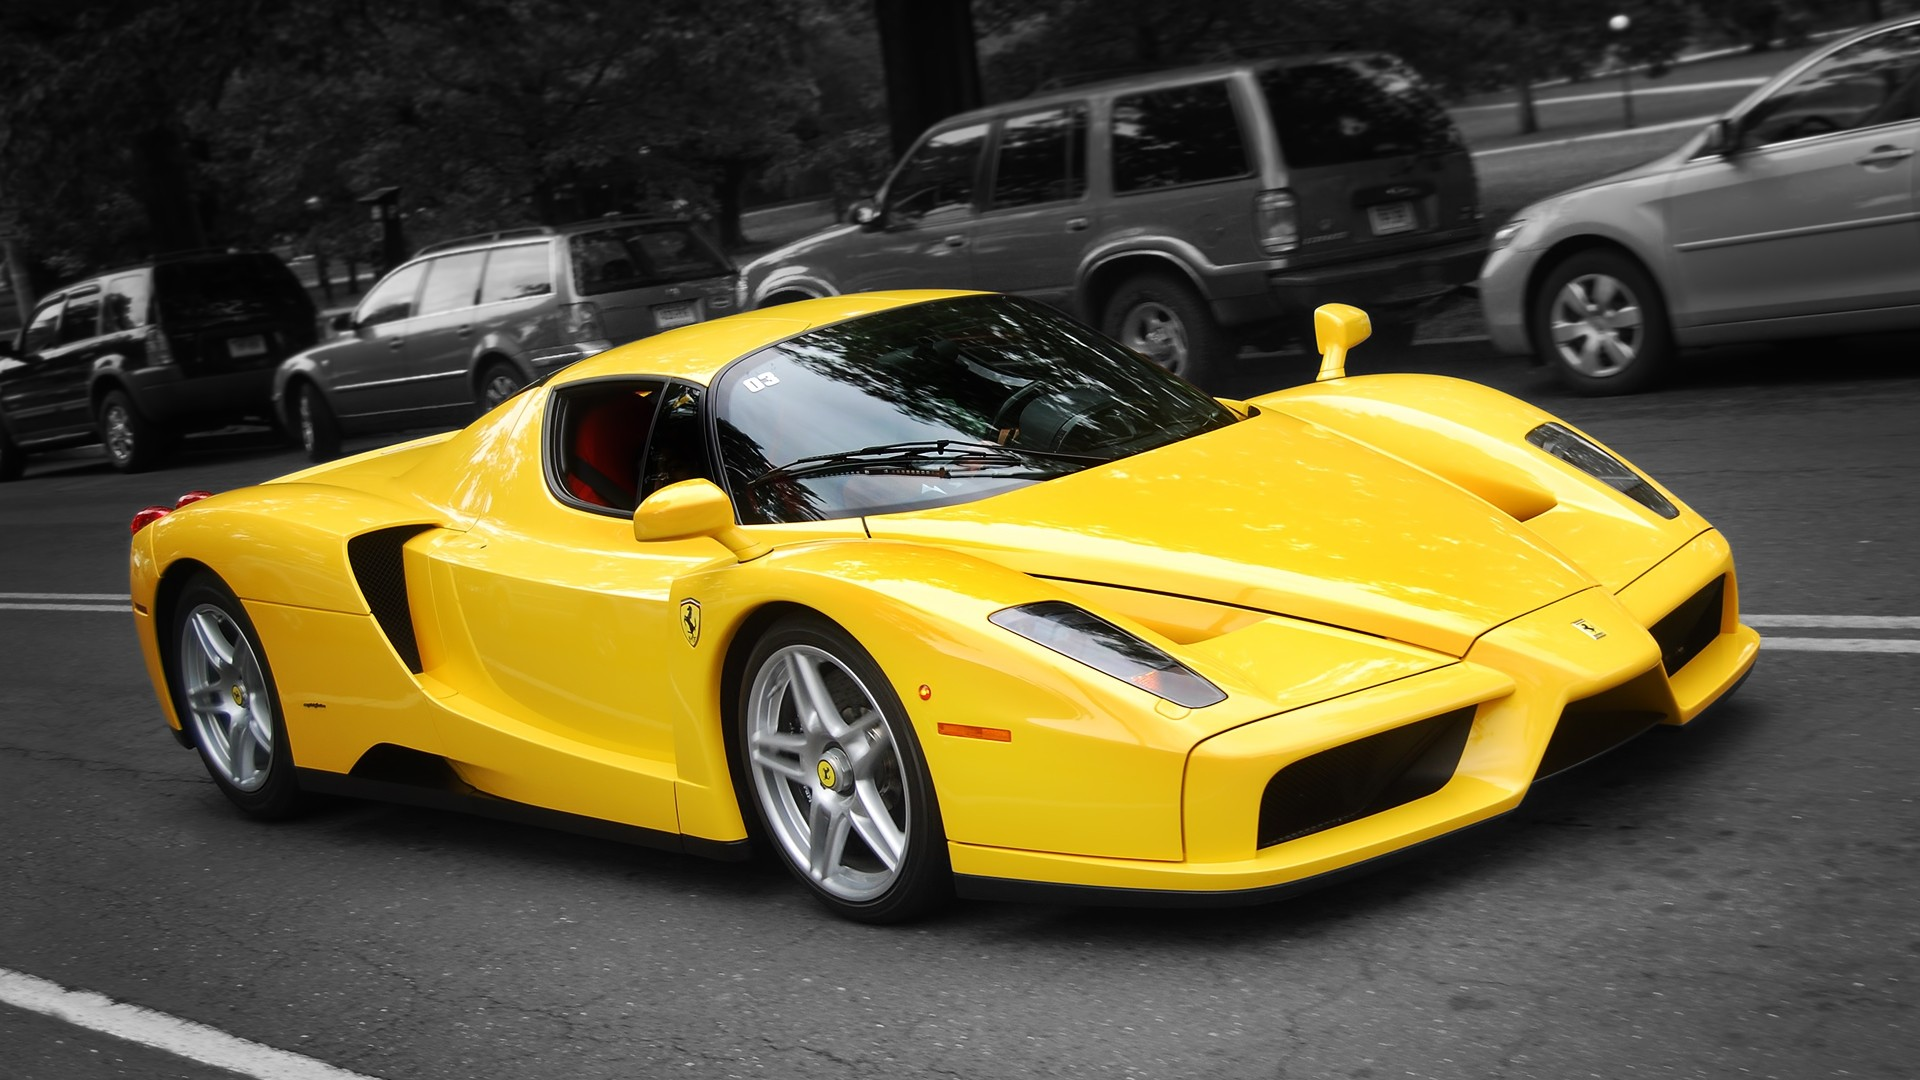 1920x1080 ... Ferrari Enzo Wallpapers Full HD Wallpaper Search Ferari Car Full Hd  Image 15 ...